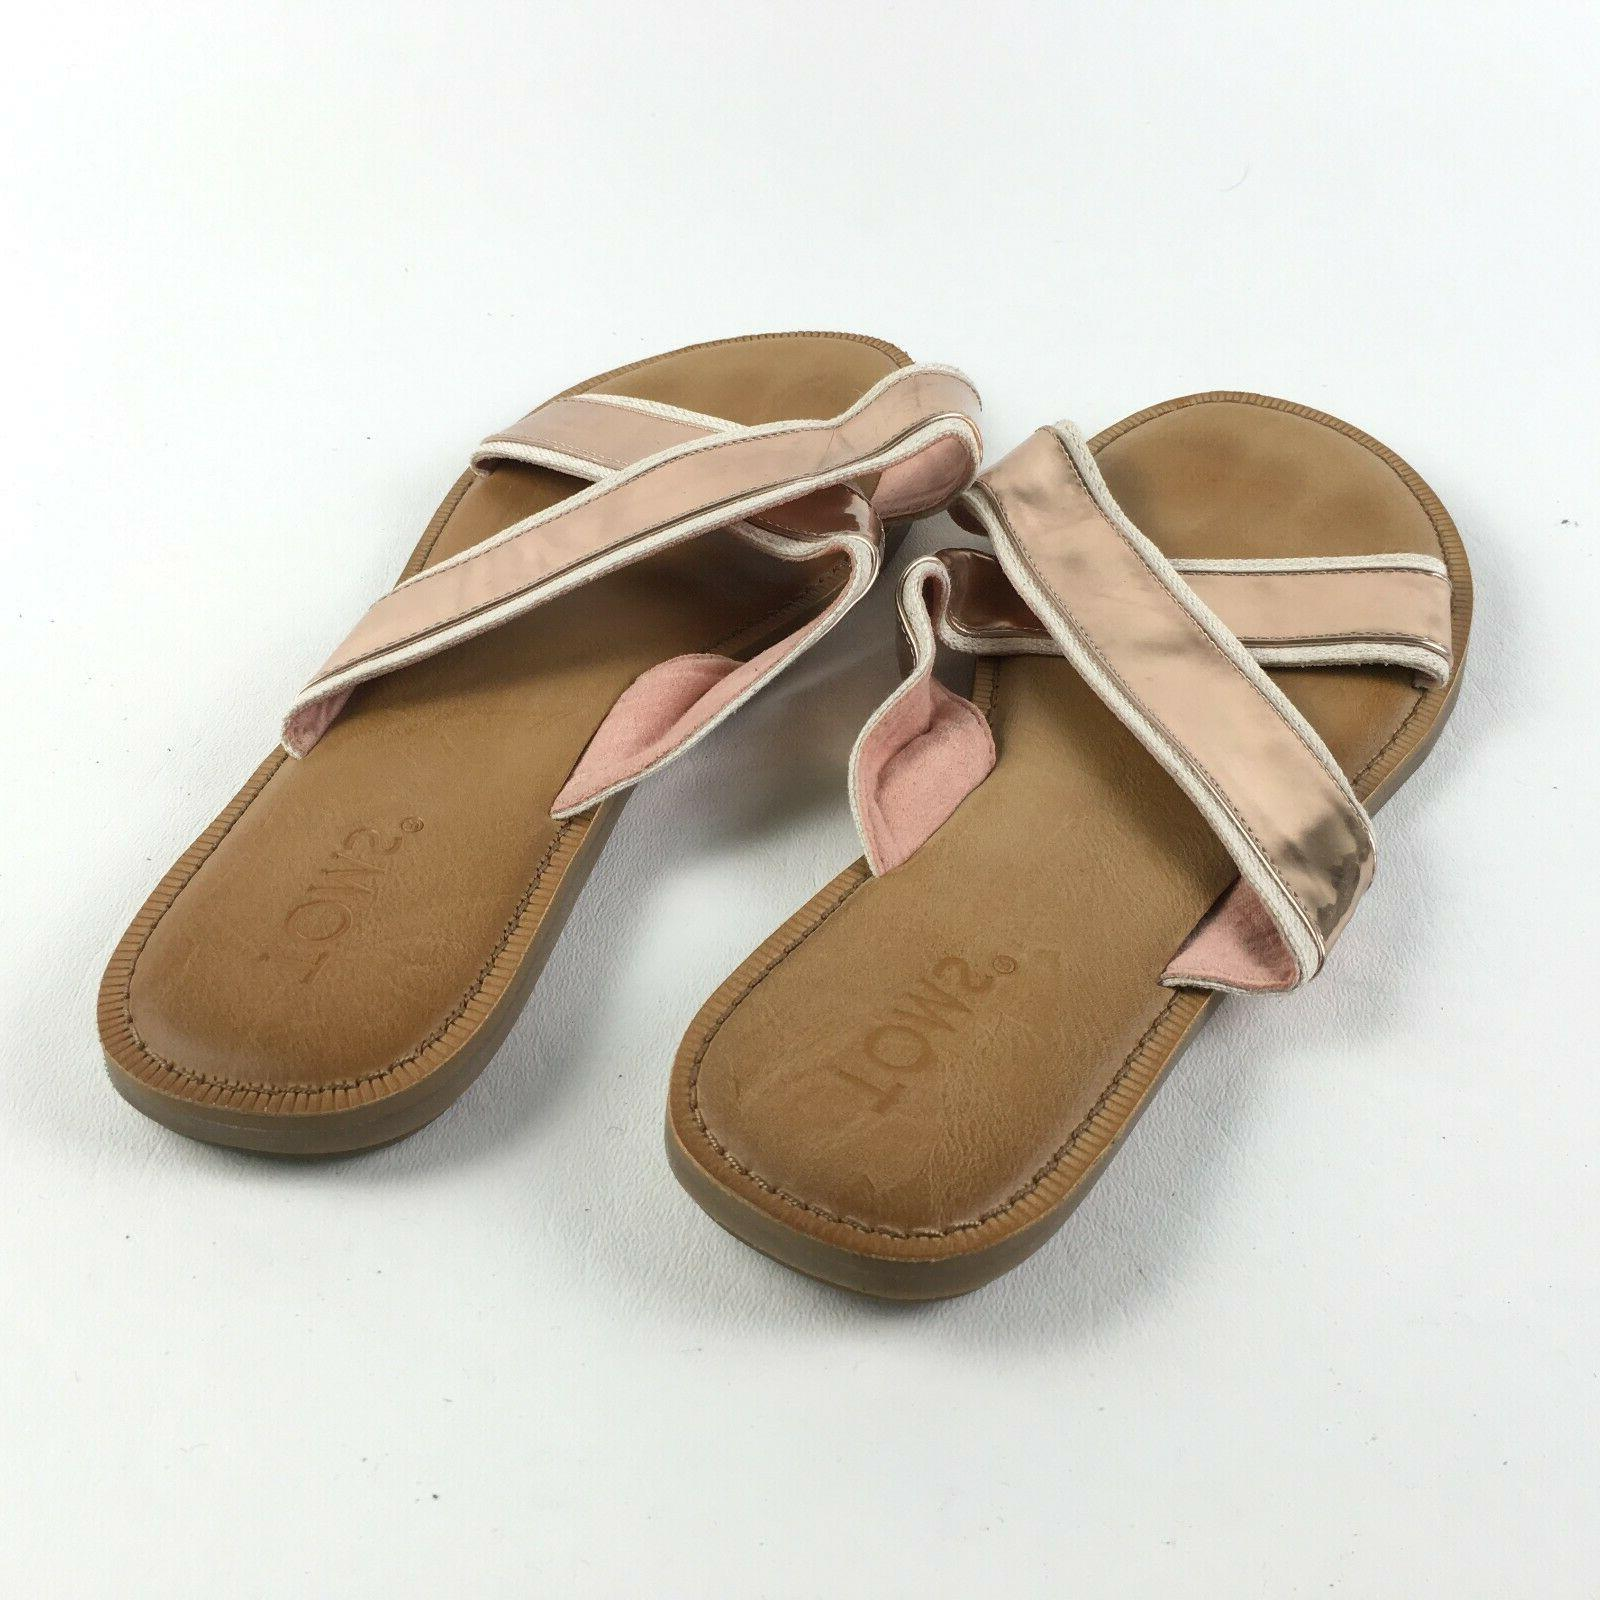 Toms Womens Rose Gold Shoes Sandals